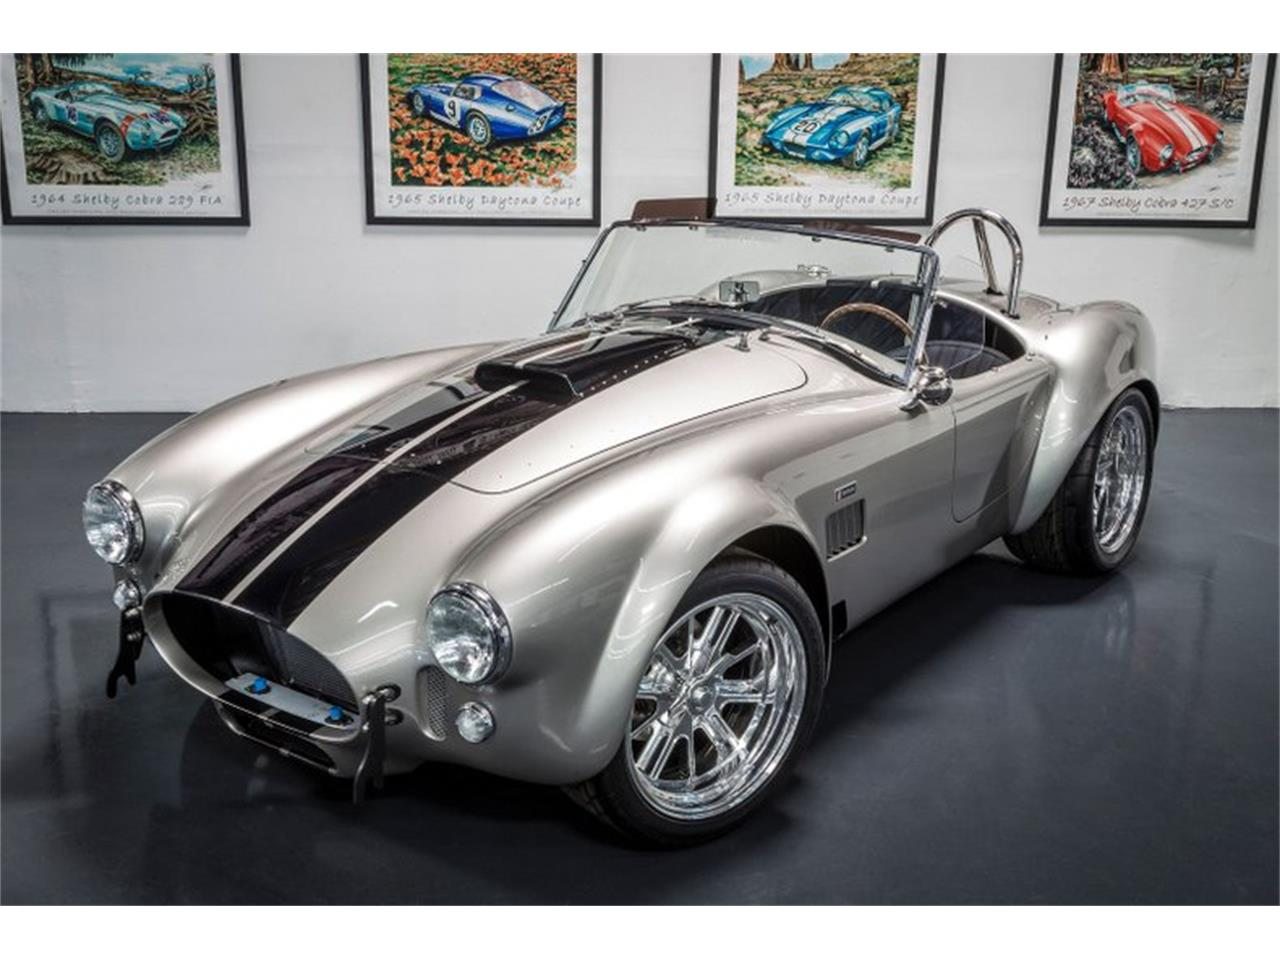 1900 Superformance MKIII (CC-1306948) for sale in Irvine, California